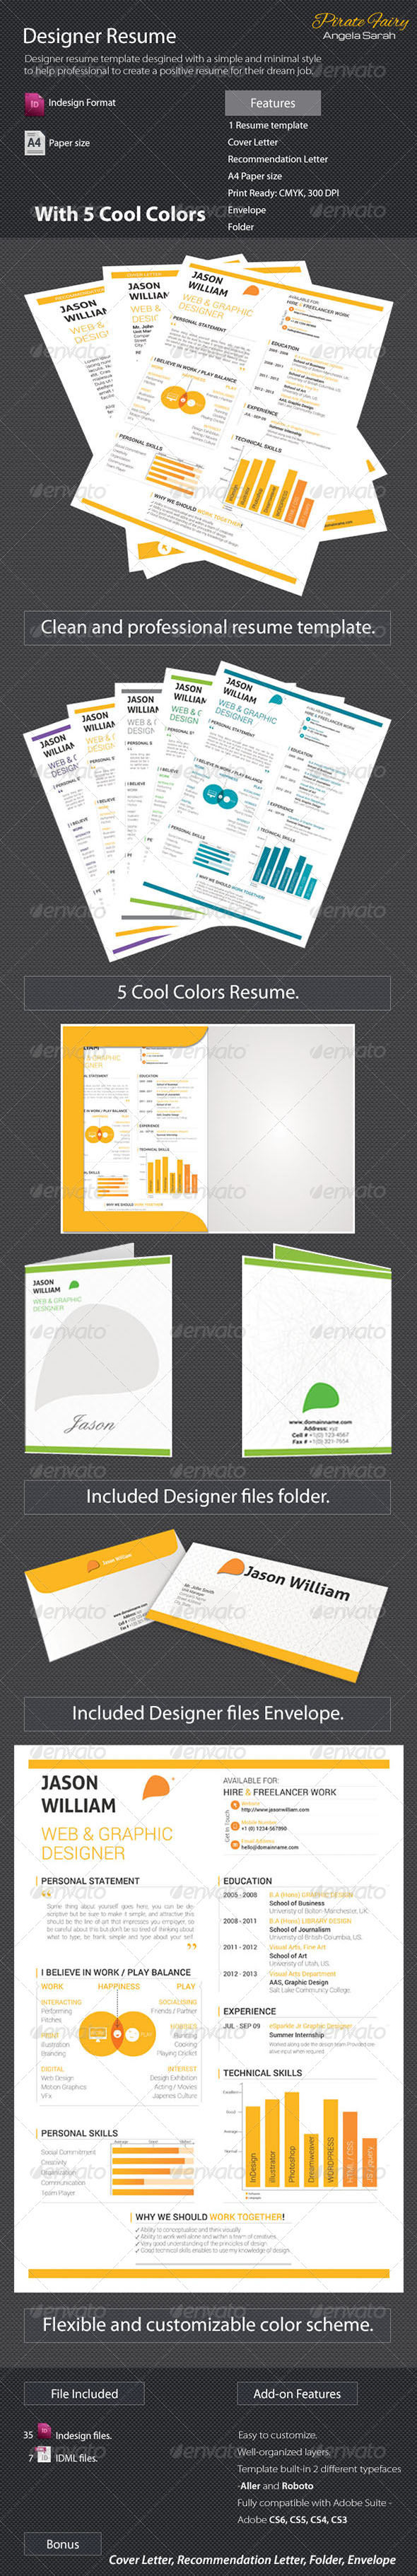 Recommendation letter graphics designs template spiritdancerdesigns Images